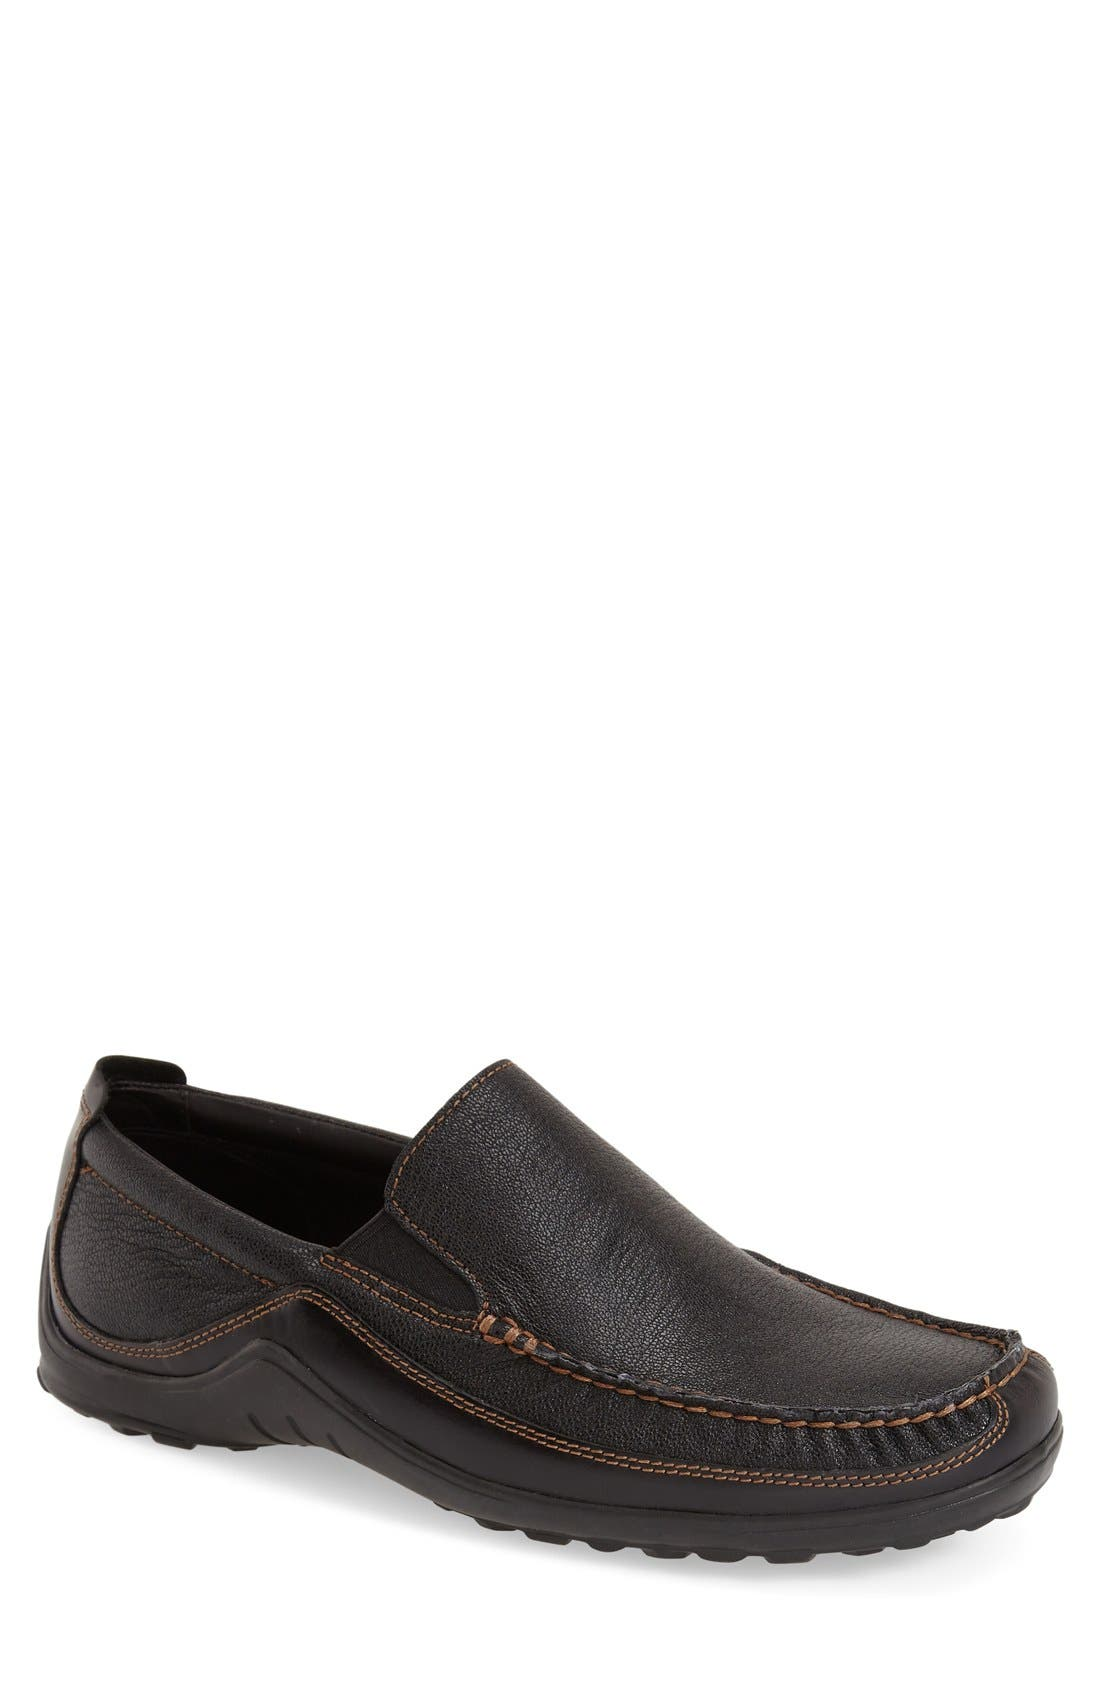 'Tucker Venetian' Loafer,                         Main,                         color, BLACK